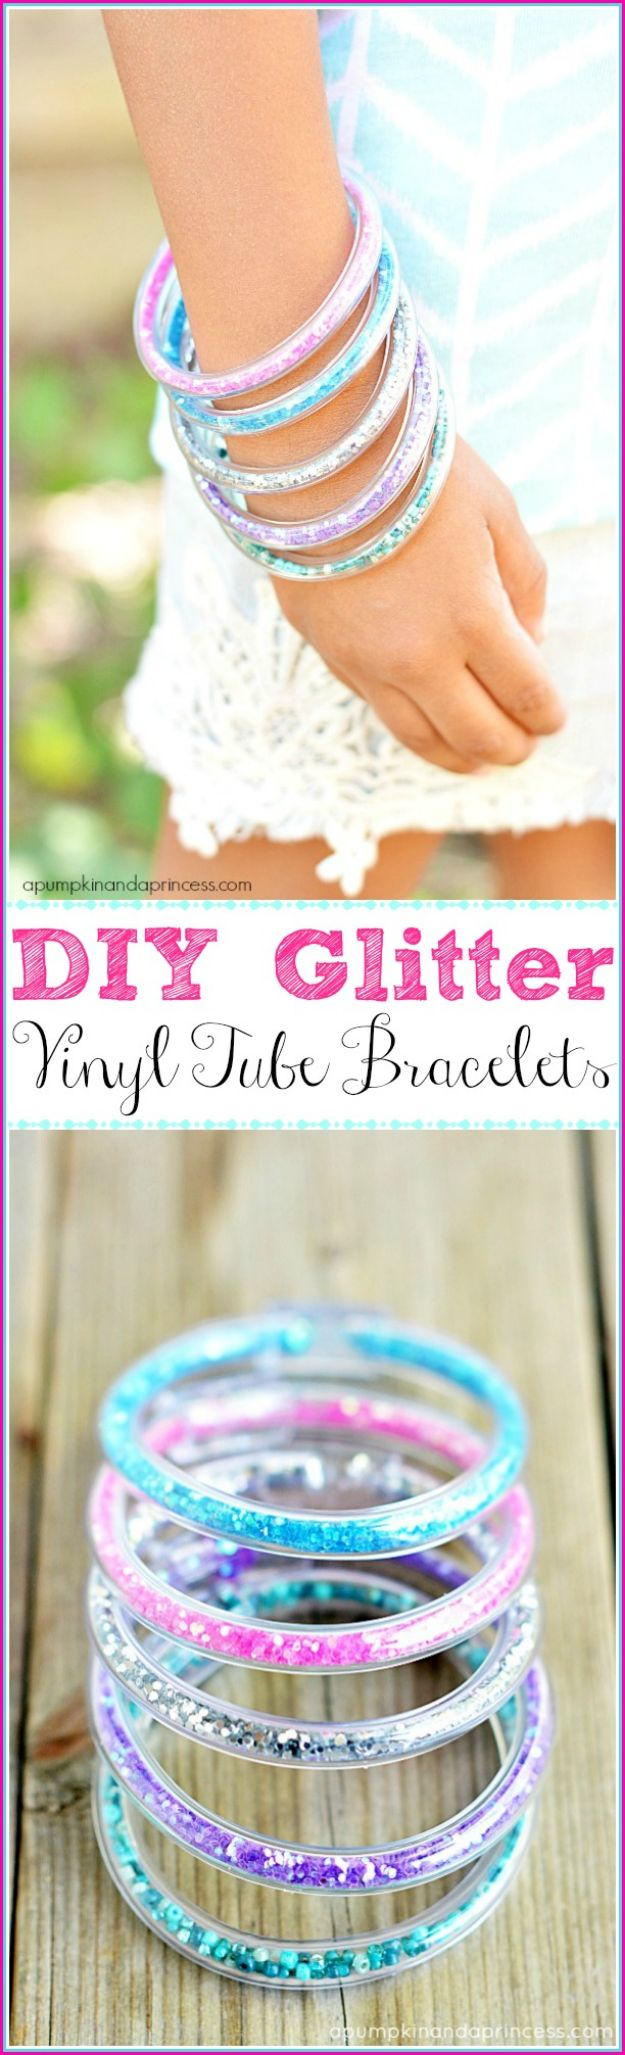 Easy Crafts for Teen Girls | Glitter Vinyl Tube Bracelets l Fun Craft and DIY Ideas for Teenagers and Tween Girl | Room Decor and Gifts